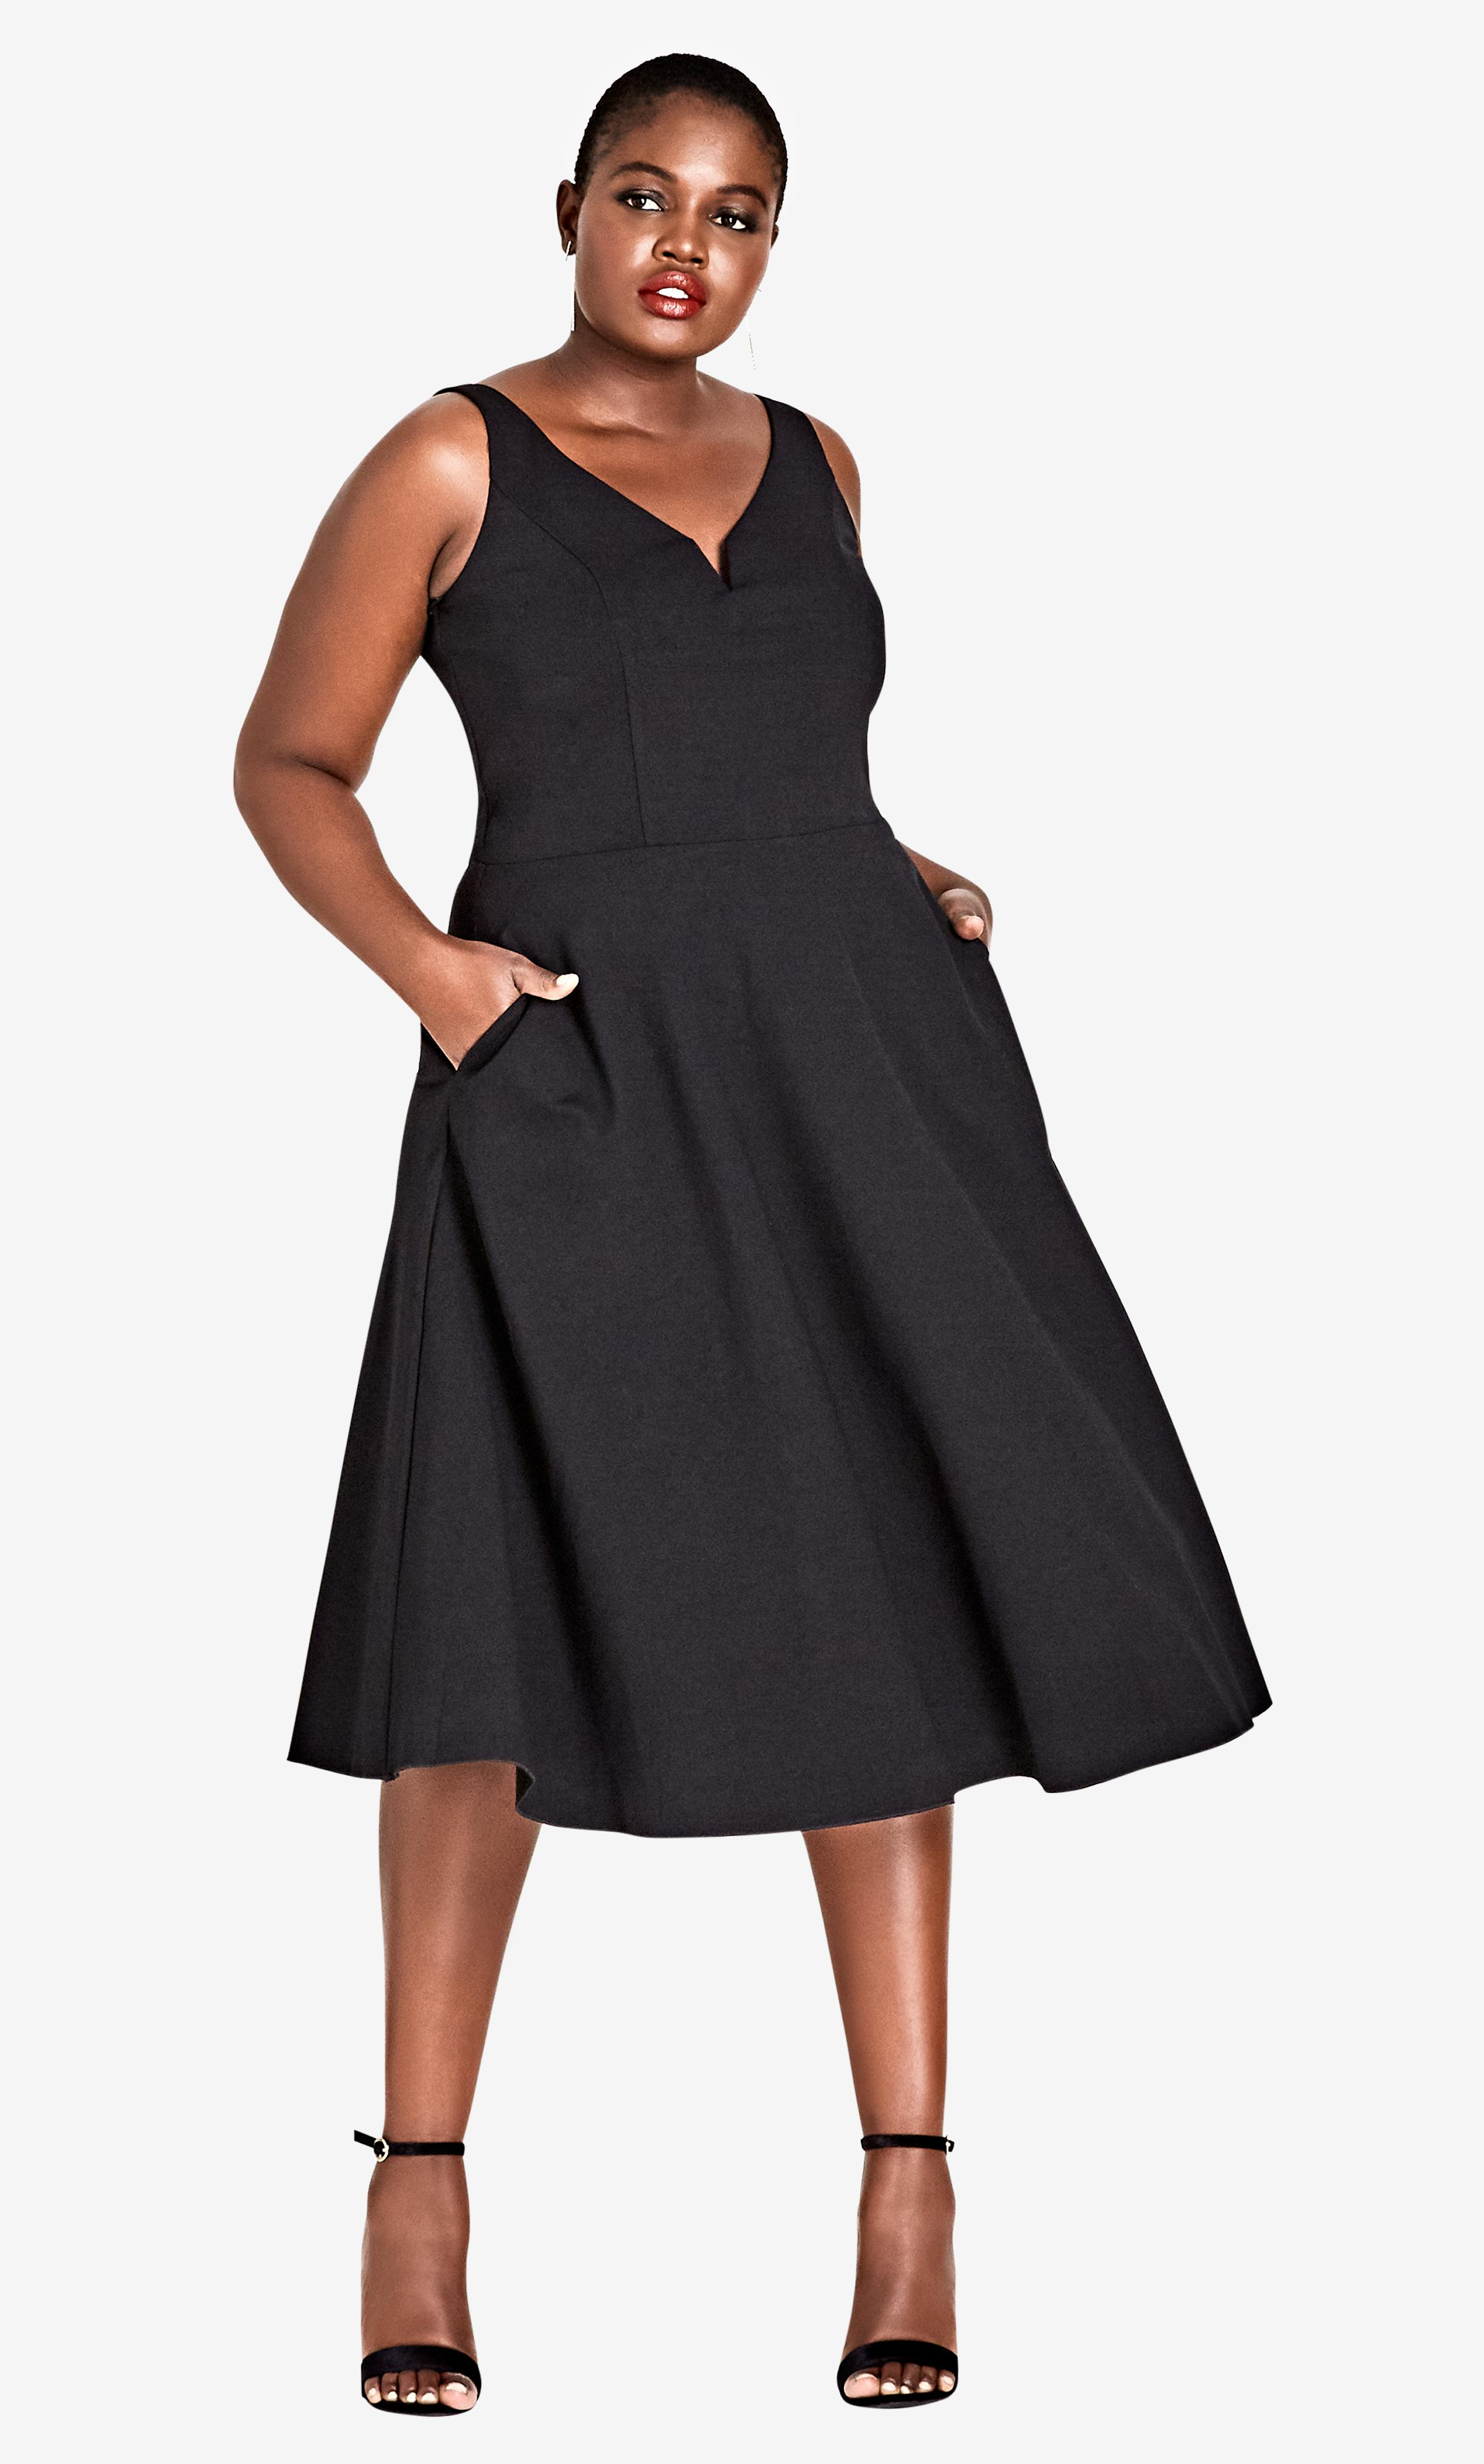 bc8ad9188fd Lyst - City Chic Cute Girl Fit   Flare Dress - Black in Black